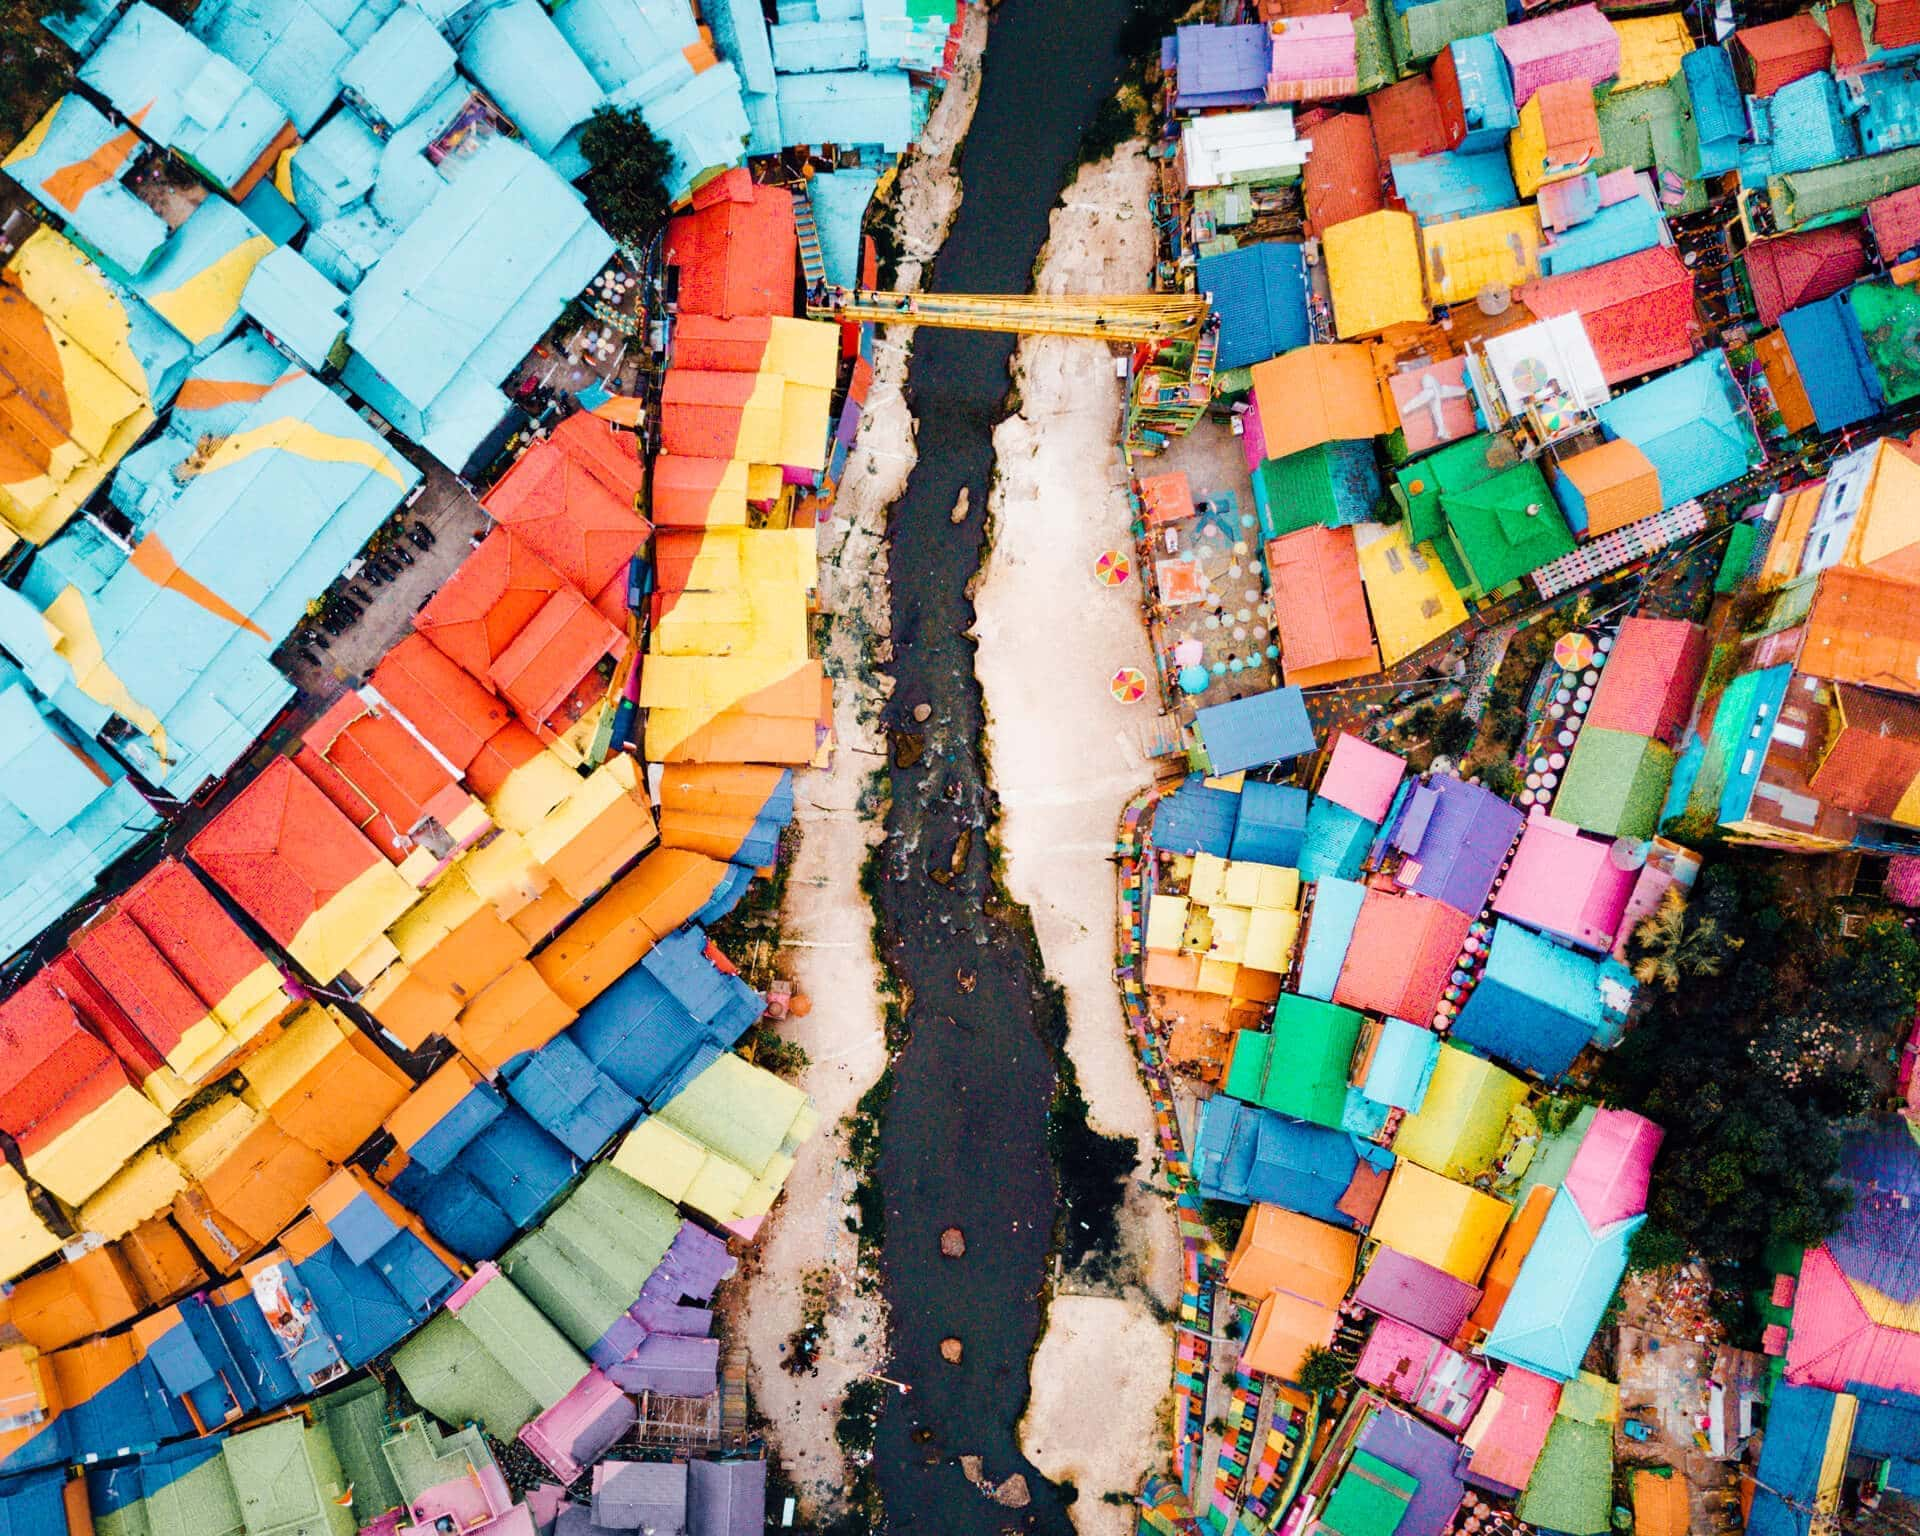 colorful village jodipan malang java drone